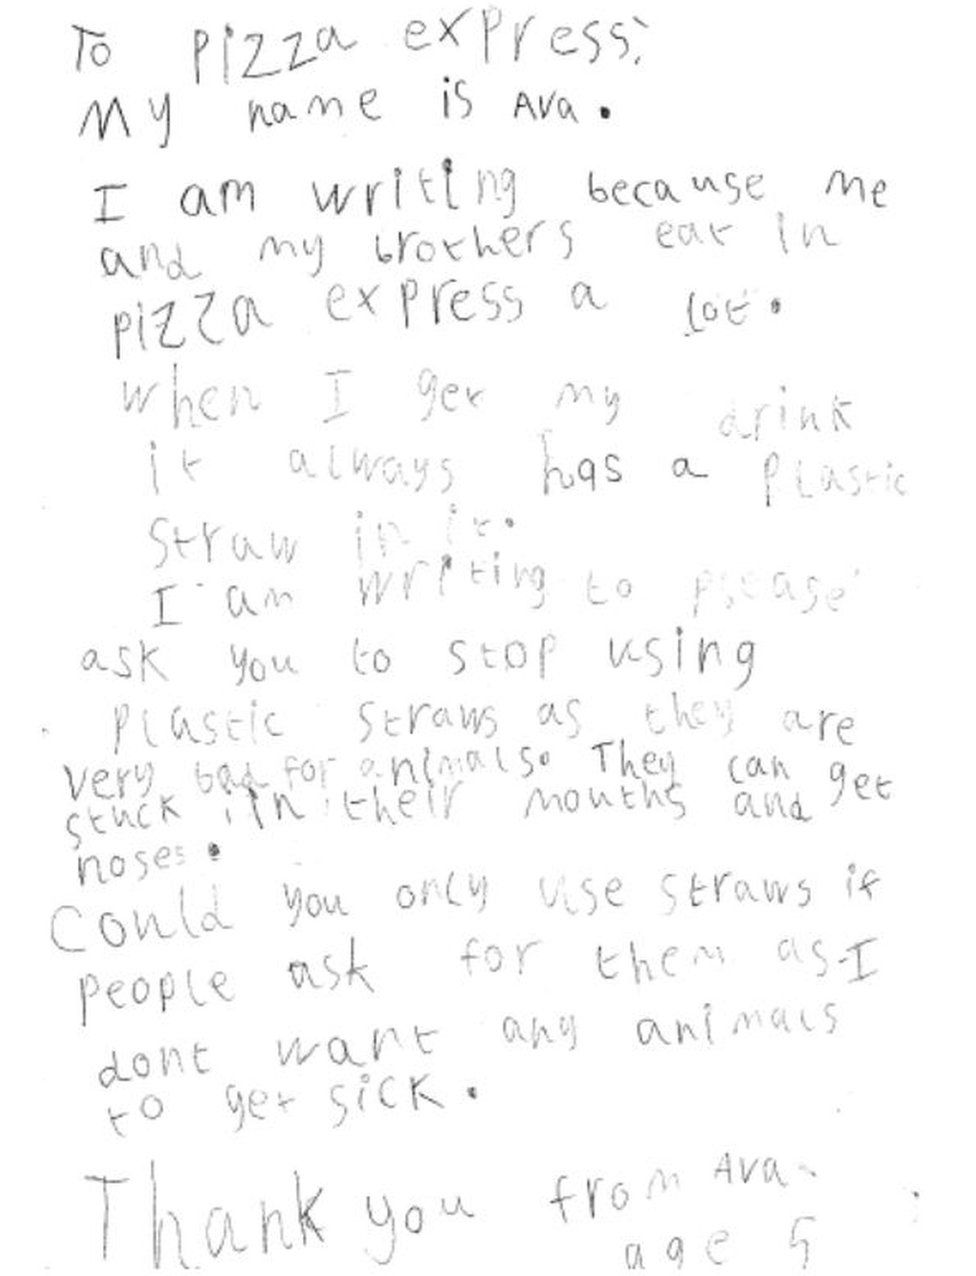 Letter from five-year-old Pizza Express customer